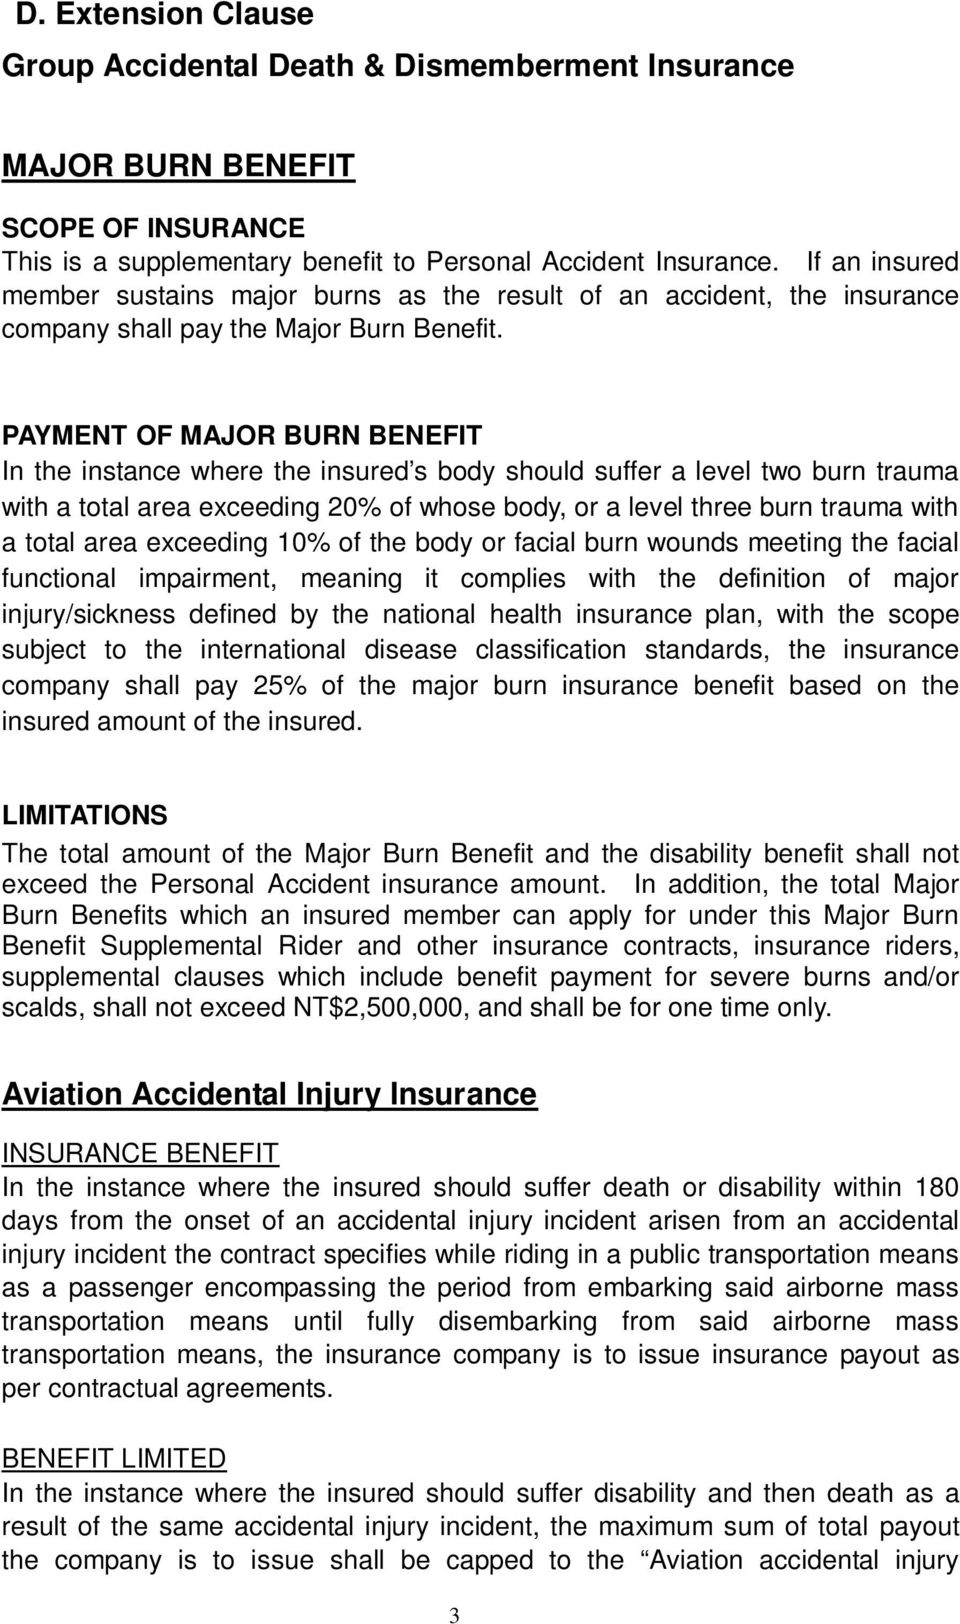 PAYMENT OF MAJOR BURN BENEFIT In the instance where the insured s body should suffer a level two burn trauma with a total area exceeding 20% of whose body, or a level three burn trauma with a total